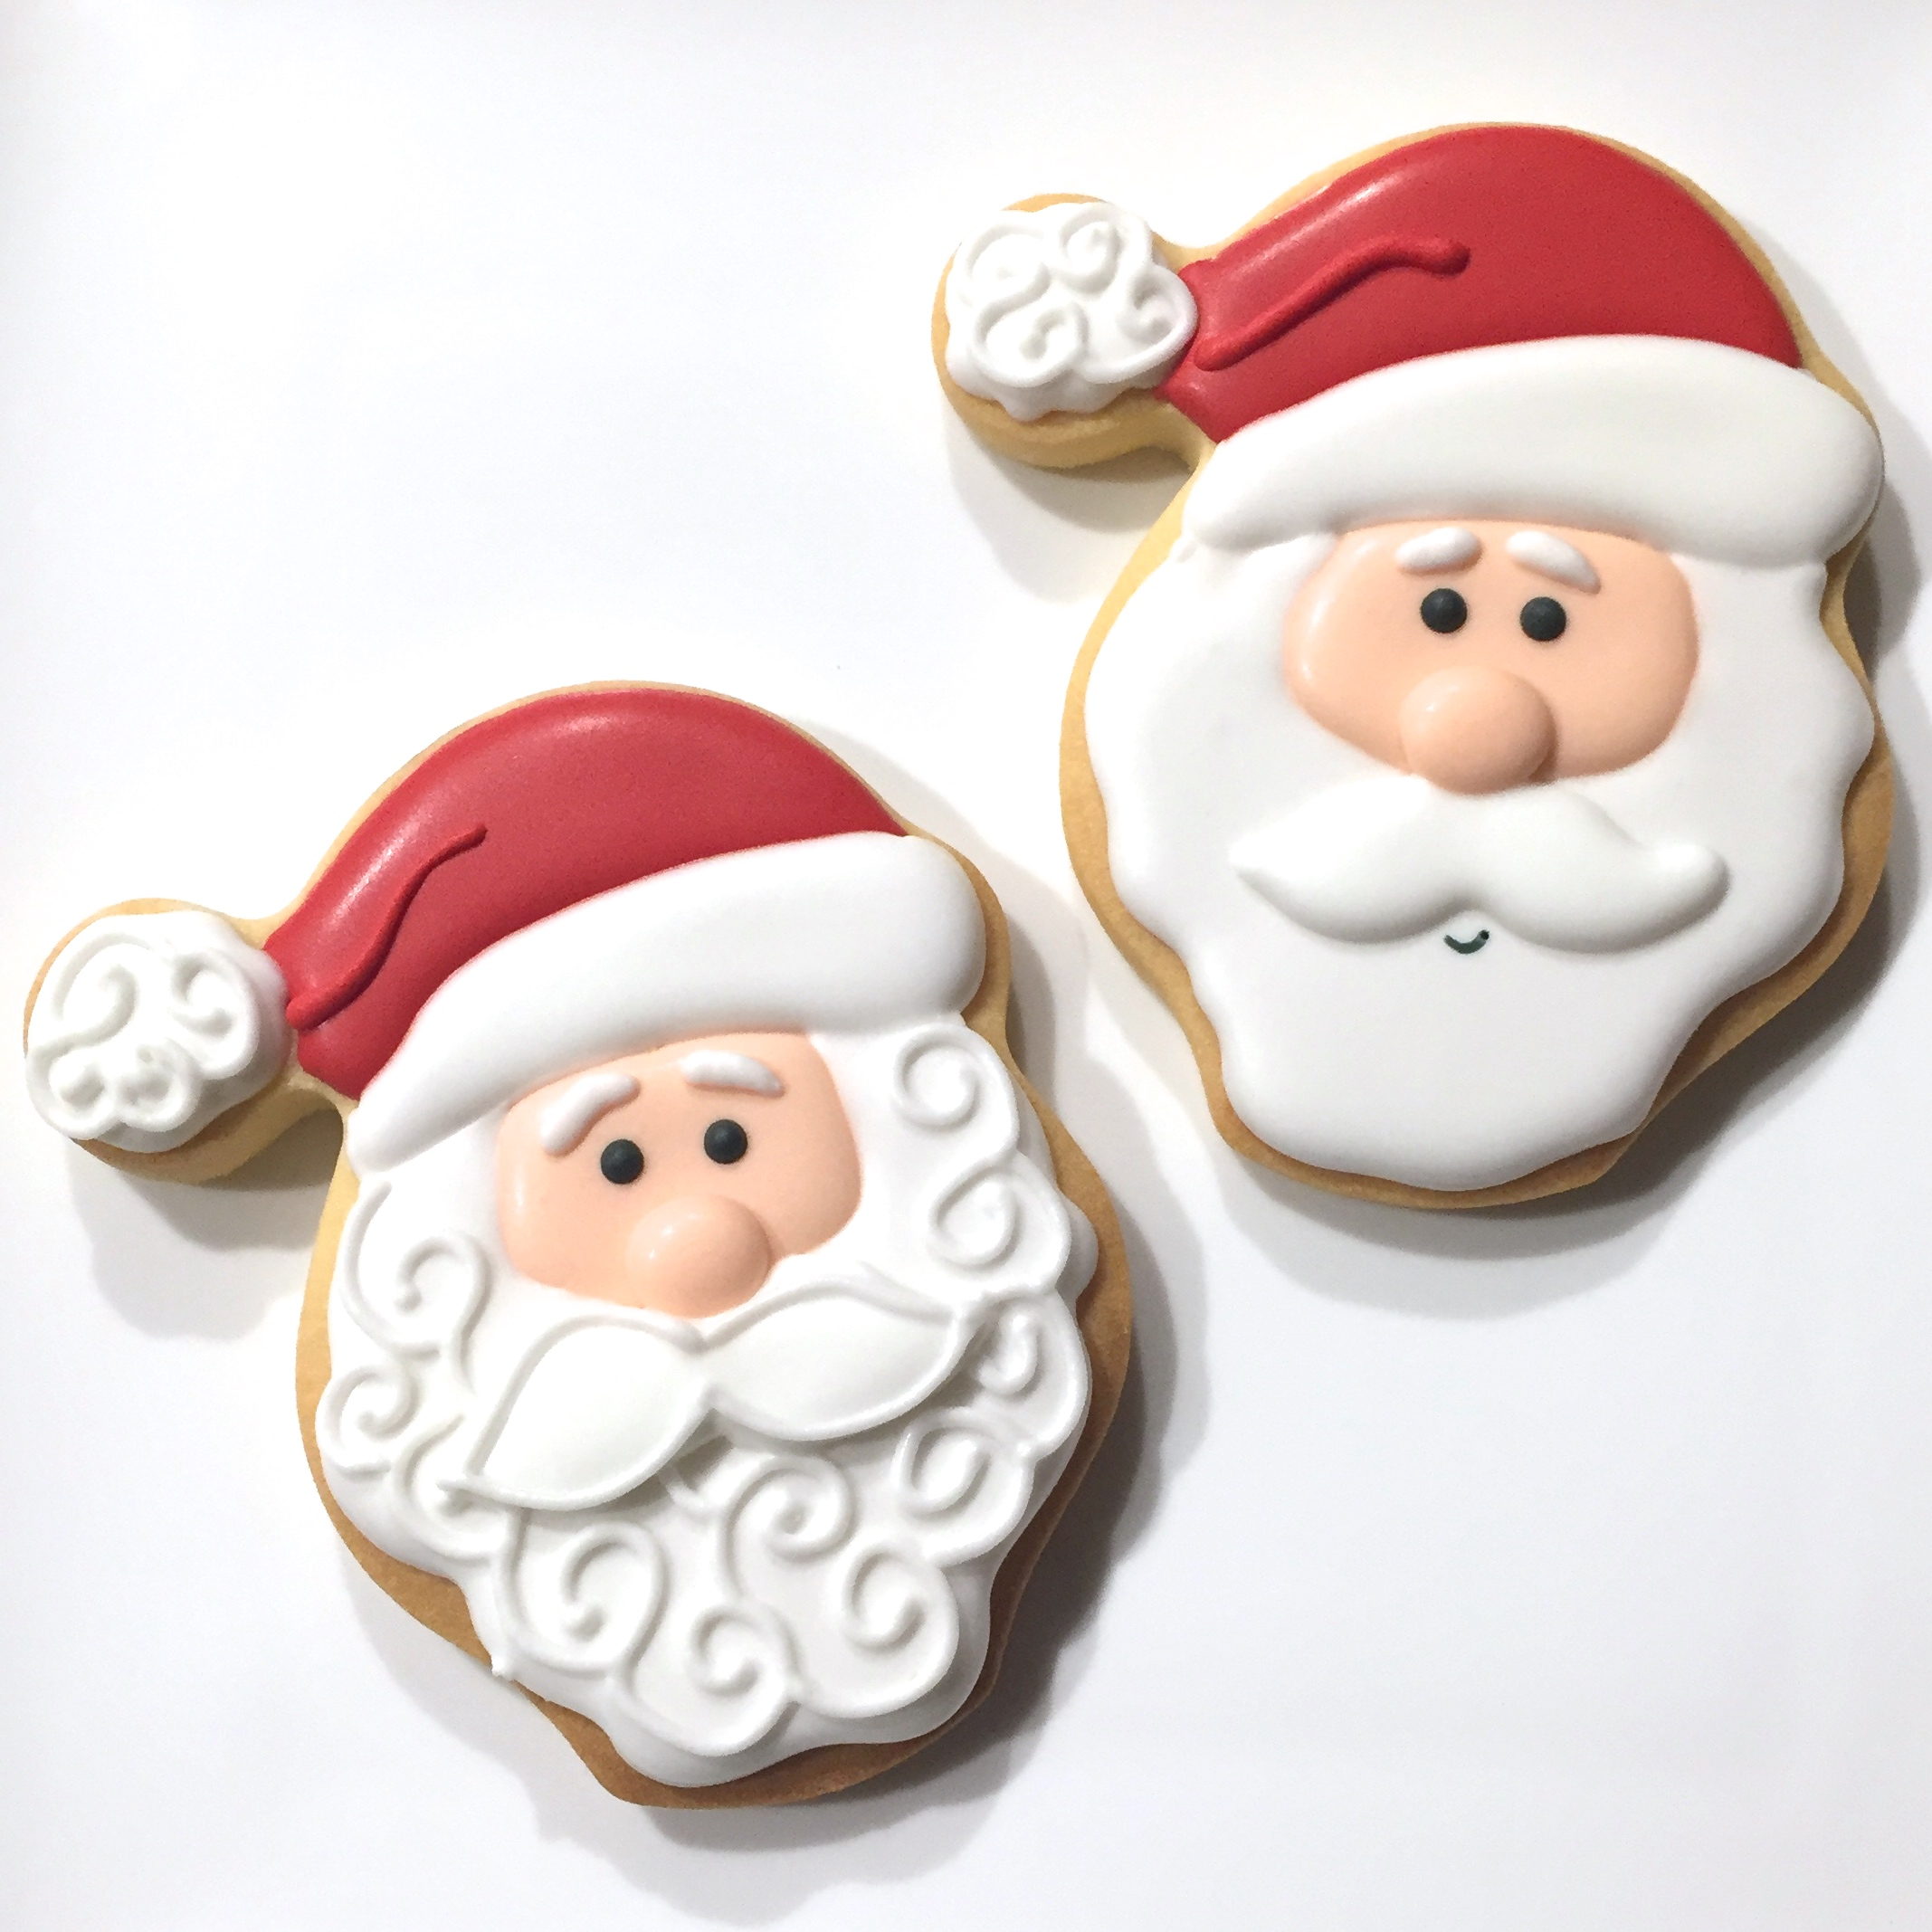 Santa Face Cookie Cutter Cuttercraft